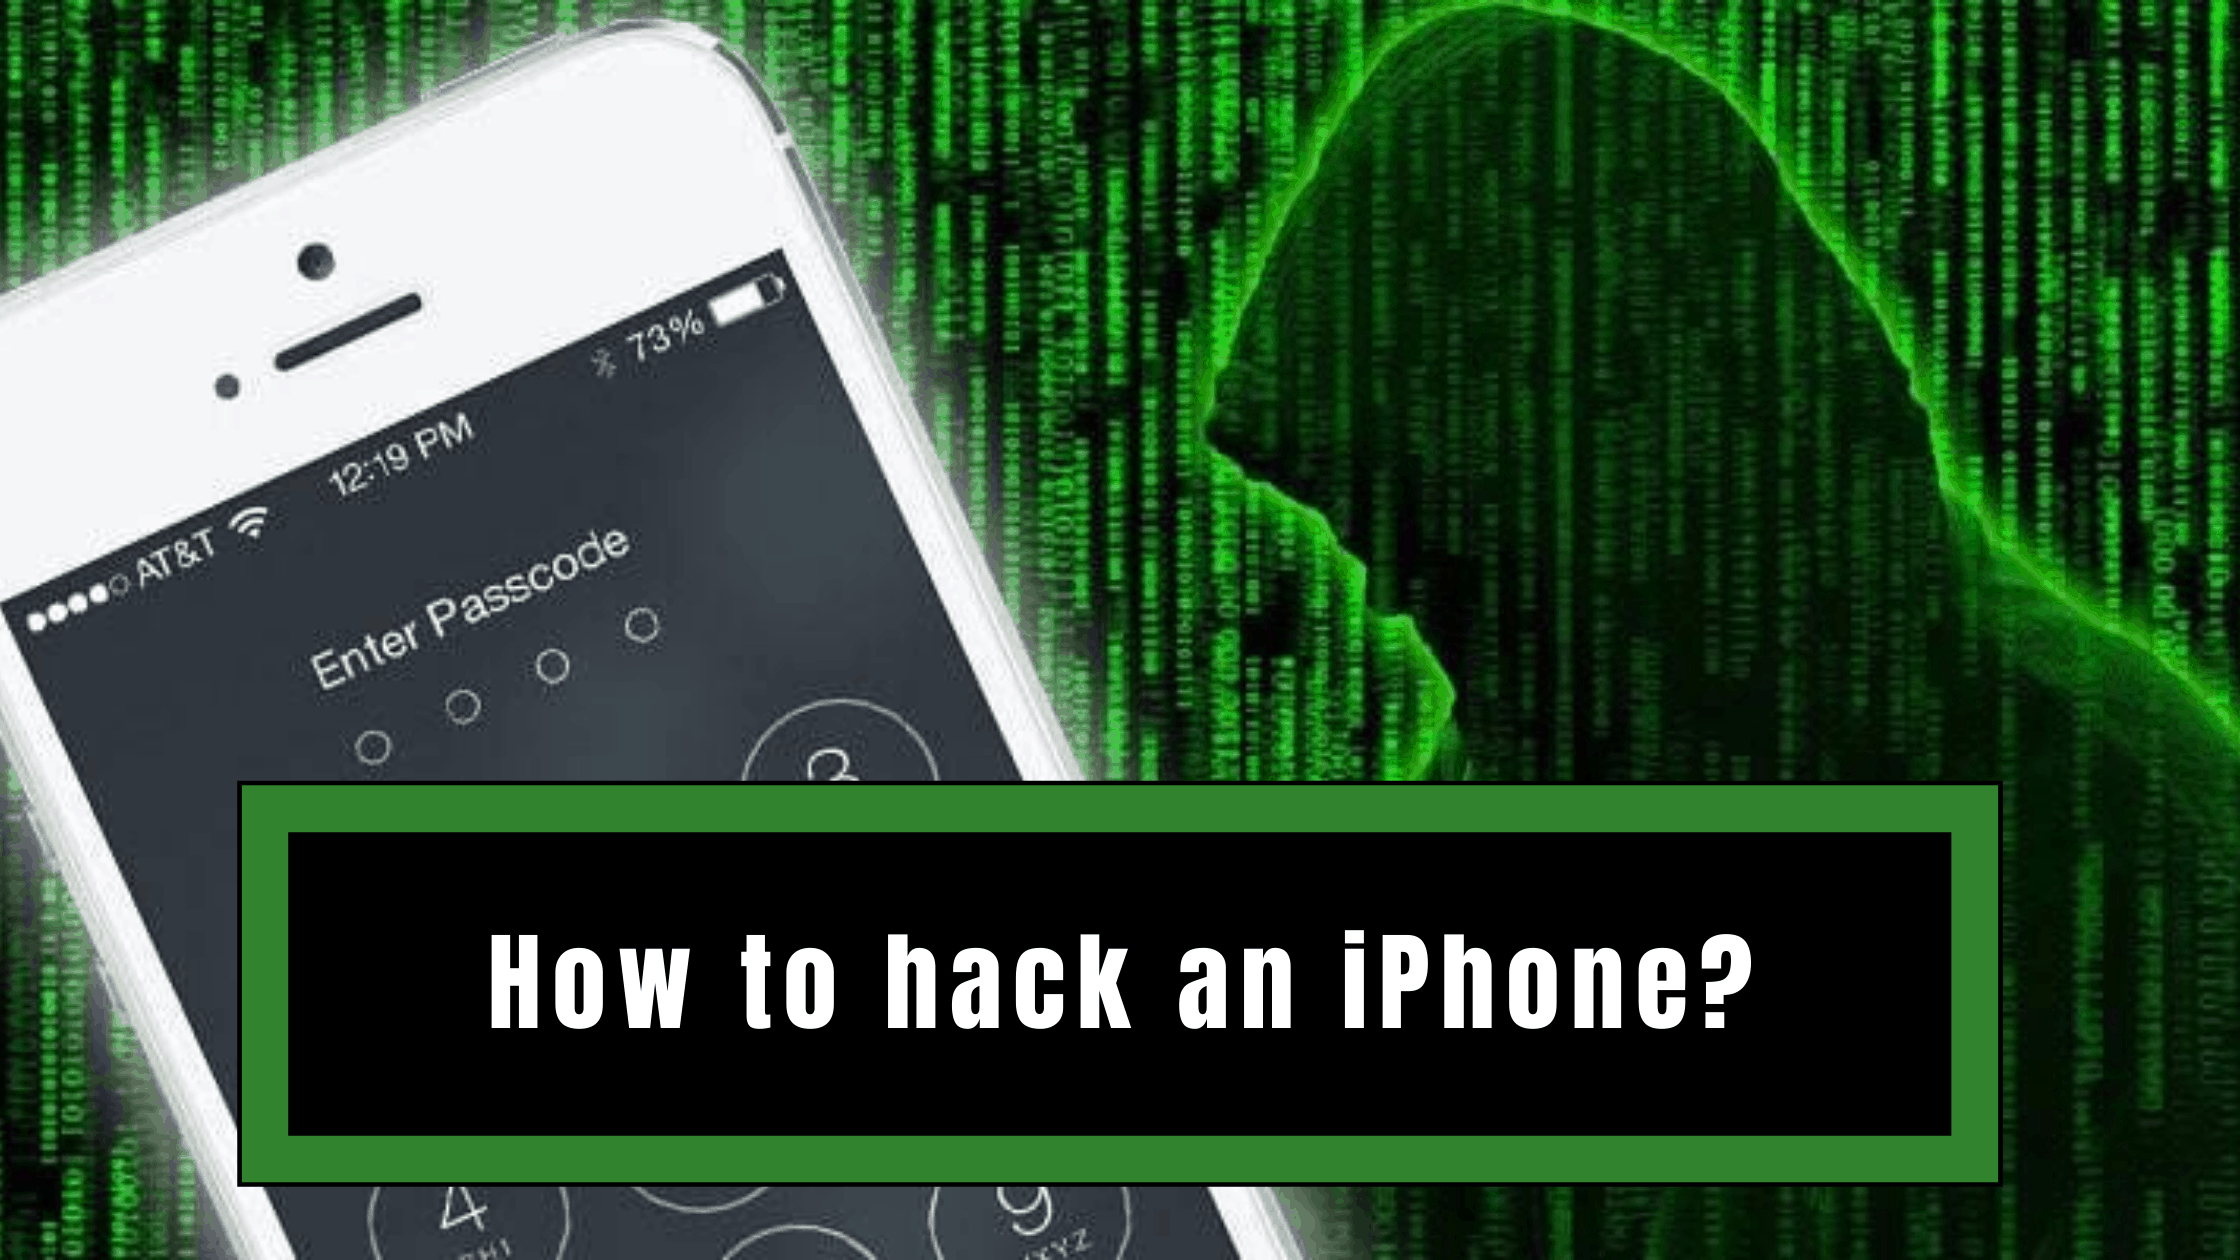 How to hack an iPhone